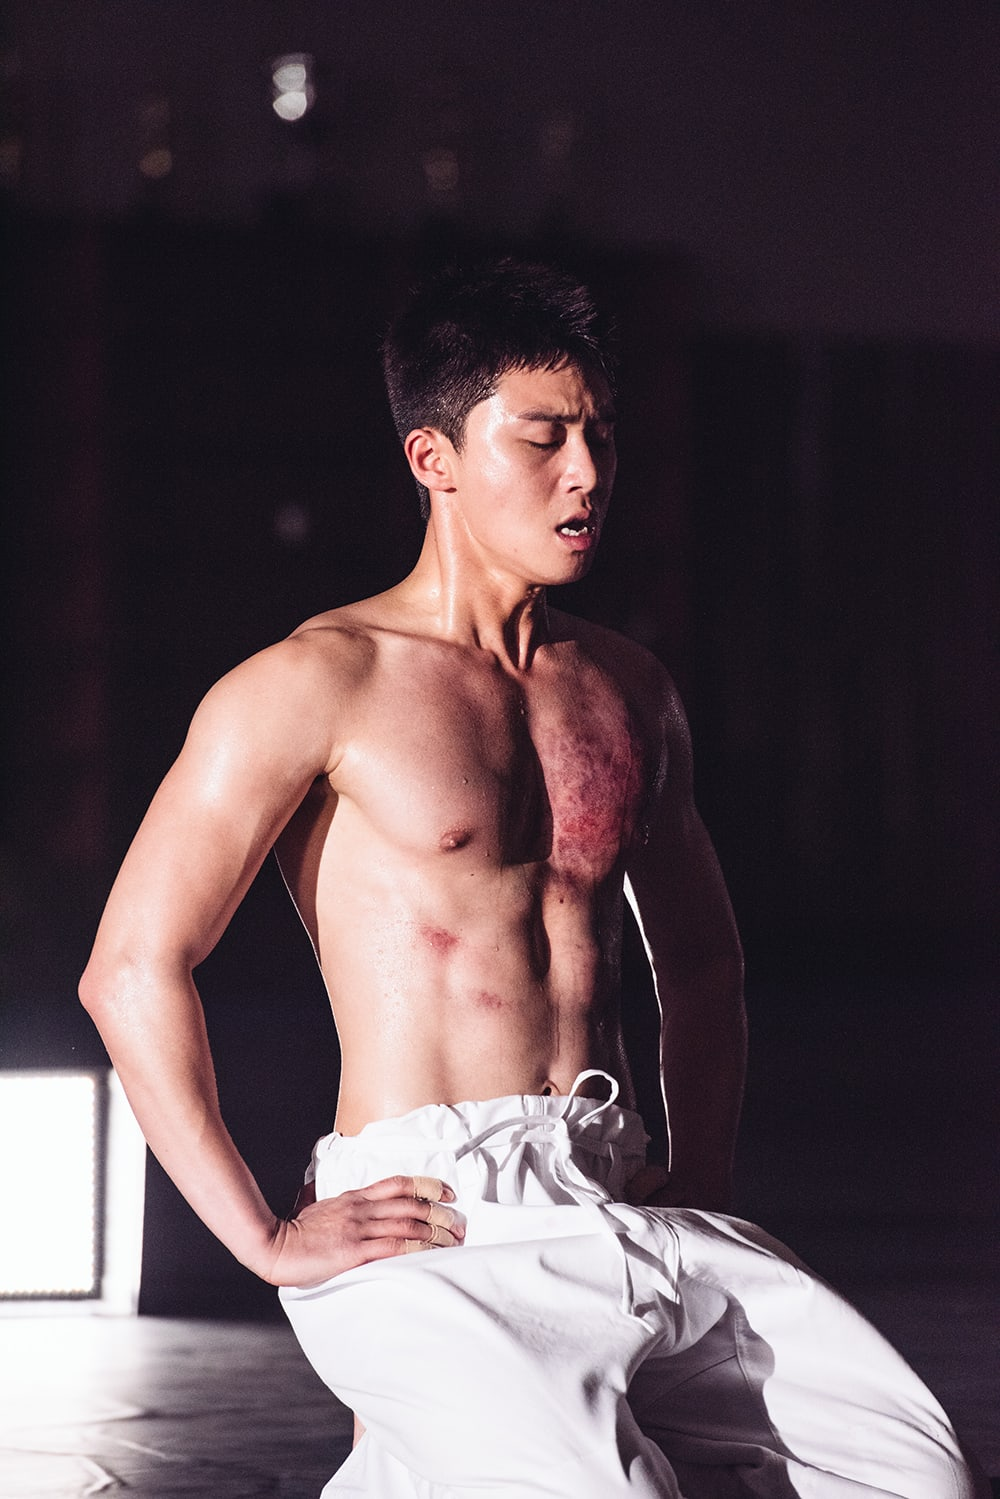 Park Seo Joon And Kang Ha Neul Show Off Toned Bodies In